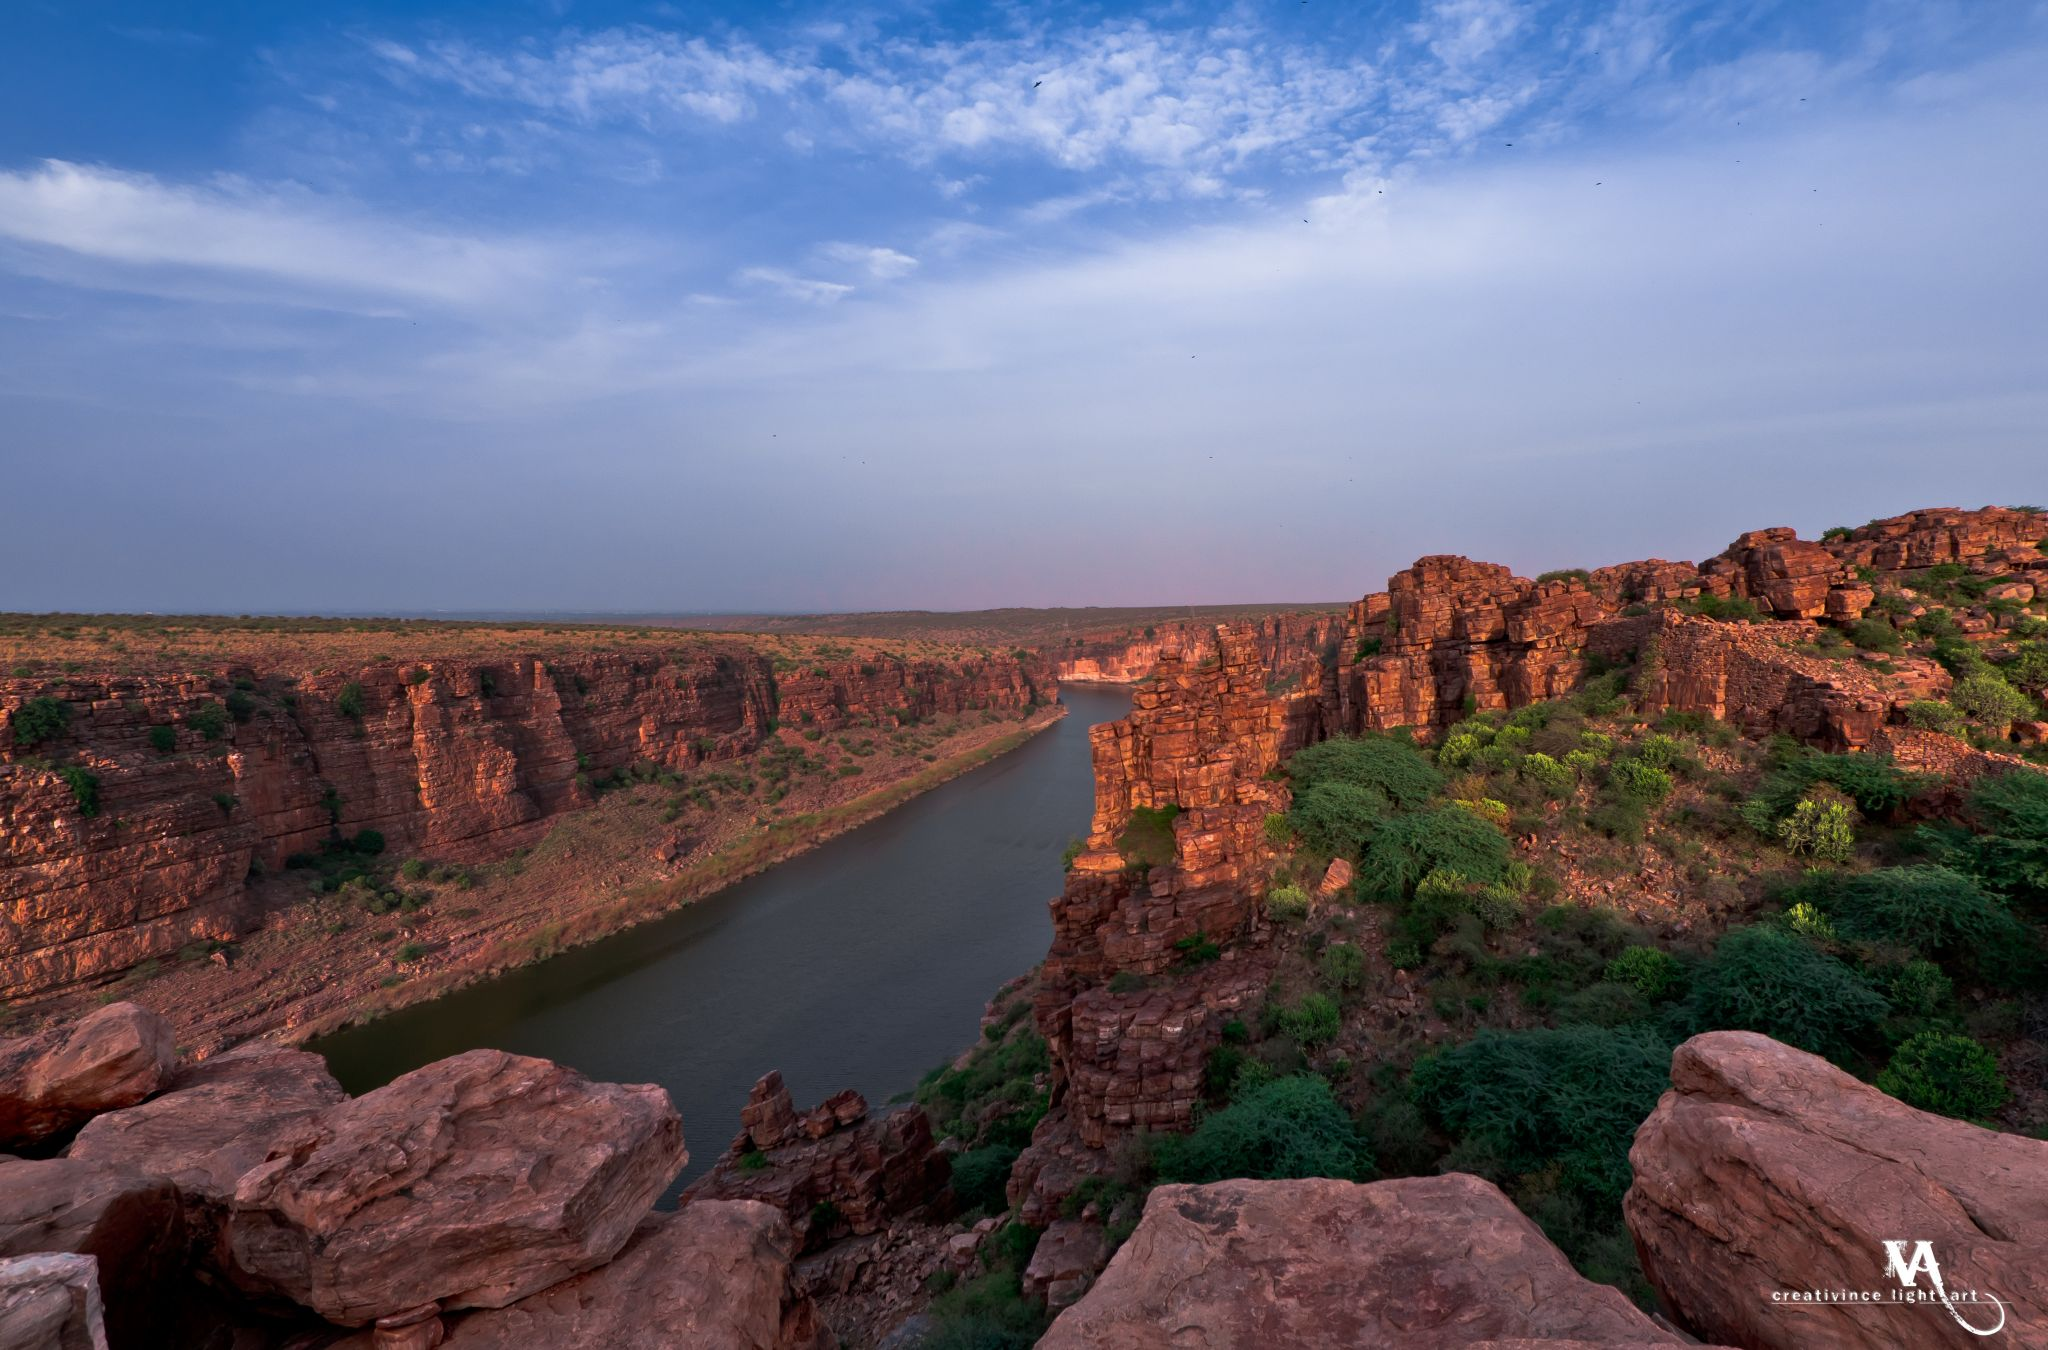 Gandikota (Grand Canyon of India), India